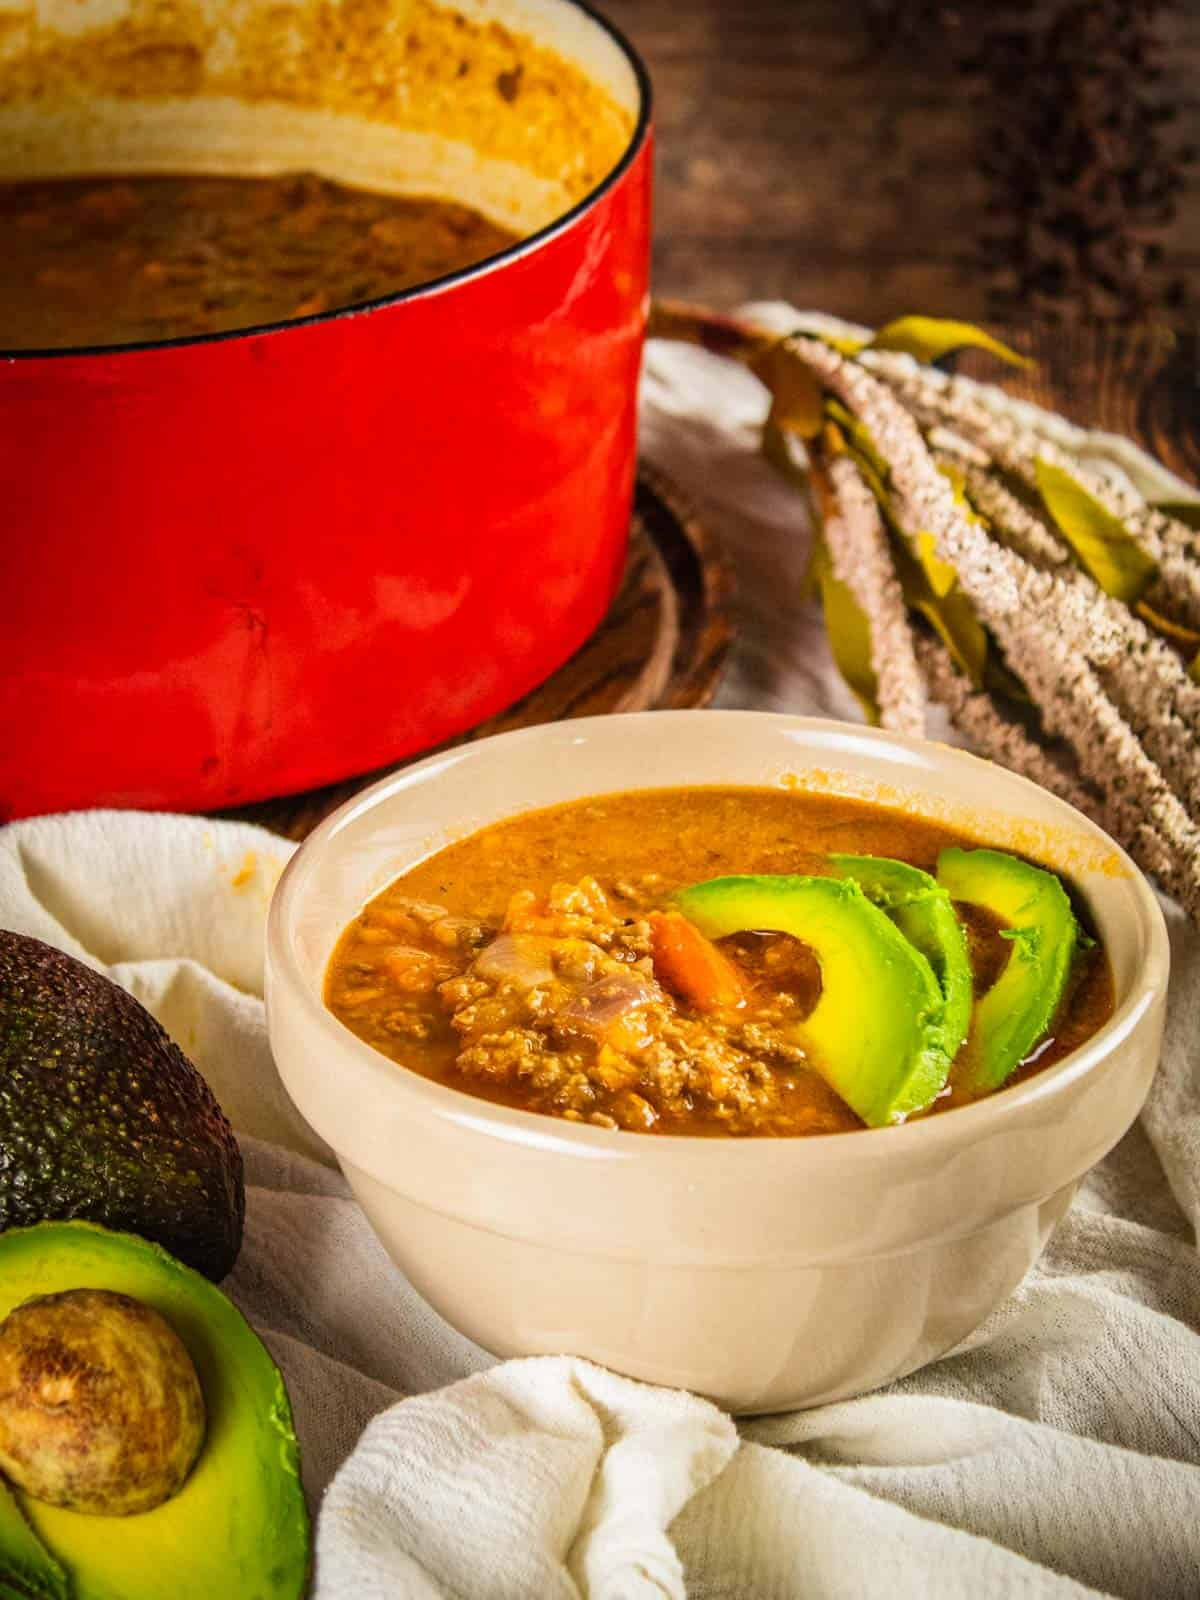 bowl of sweet potato turkey chili topped with sliced avocado with avocados next to it and a red pot in the background